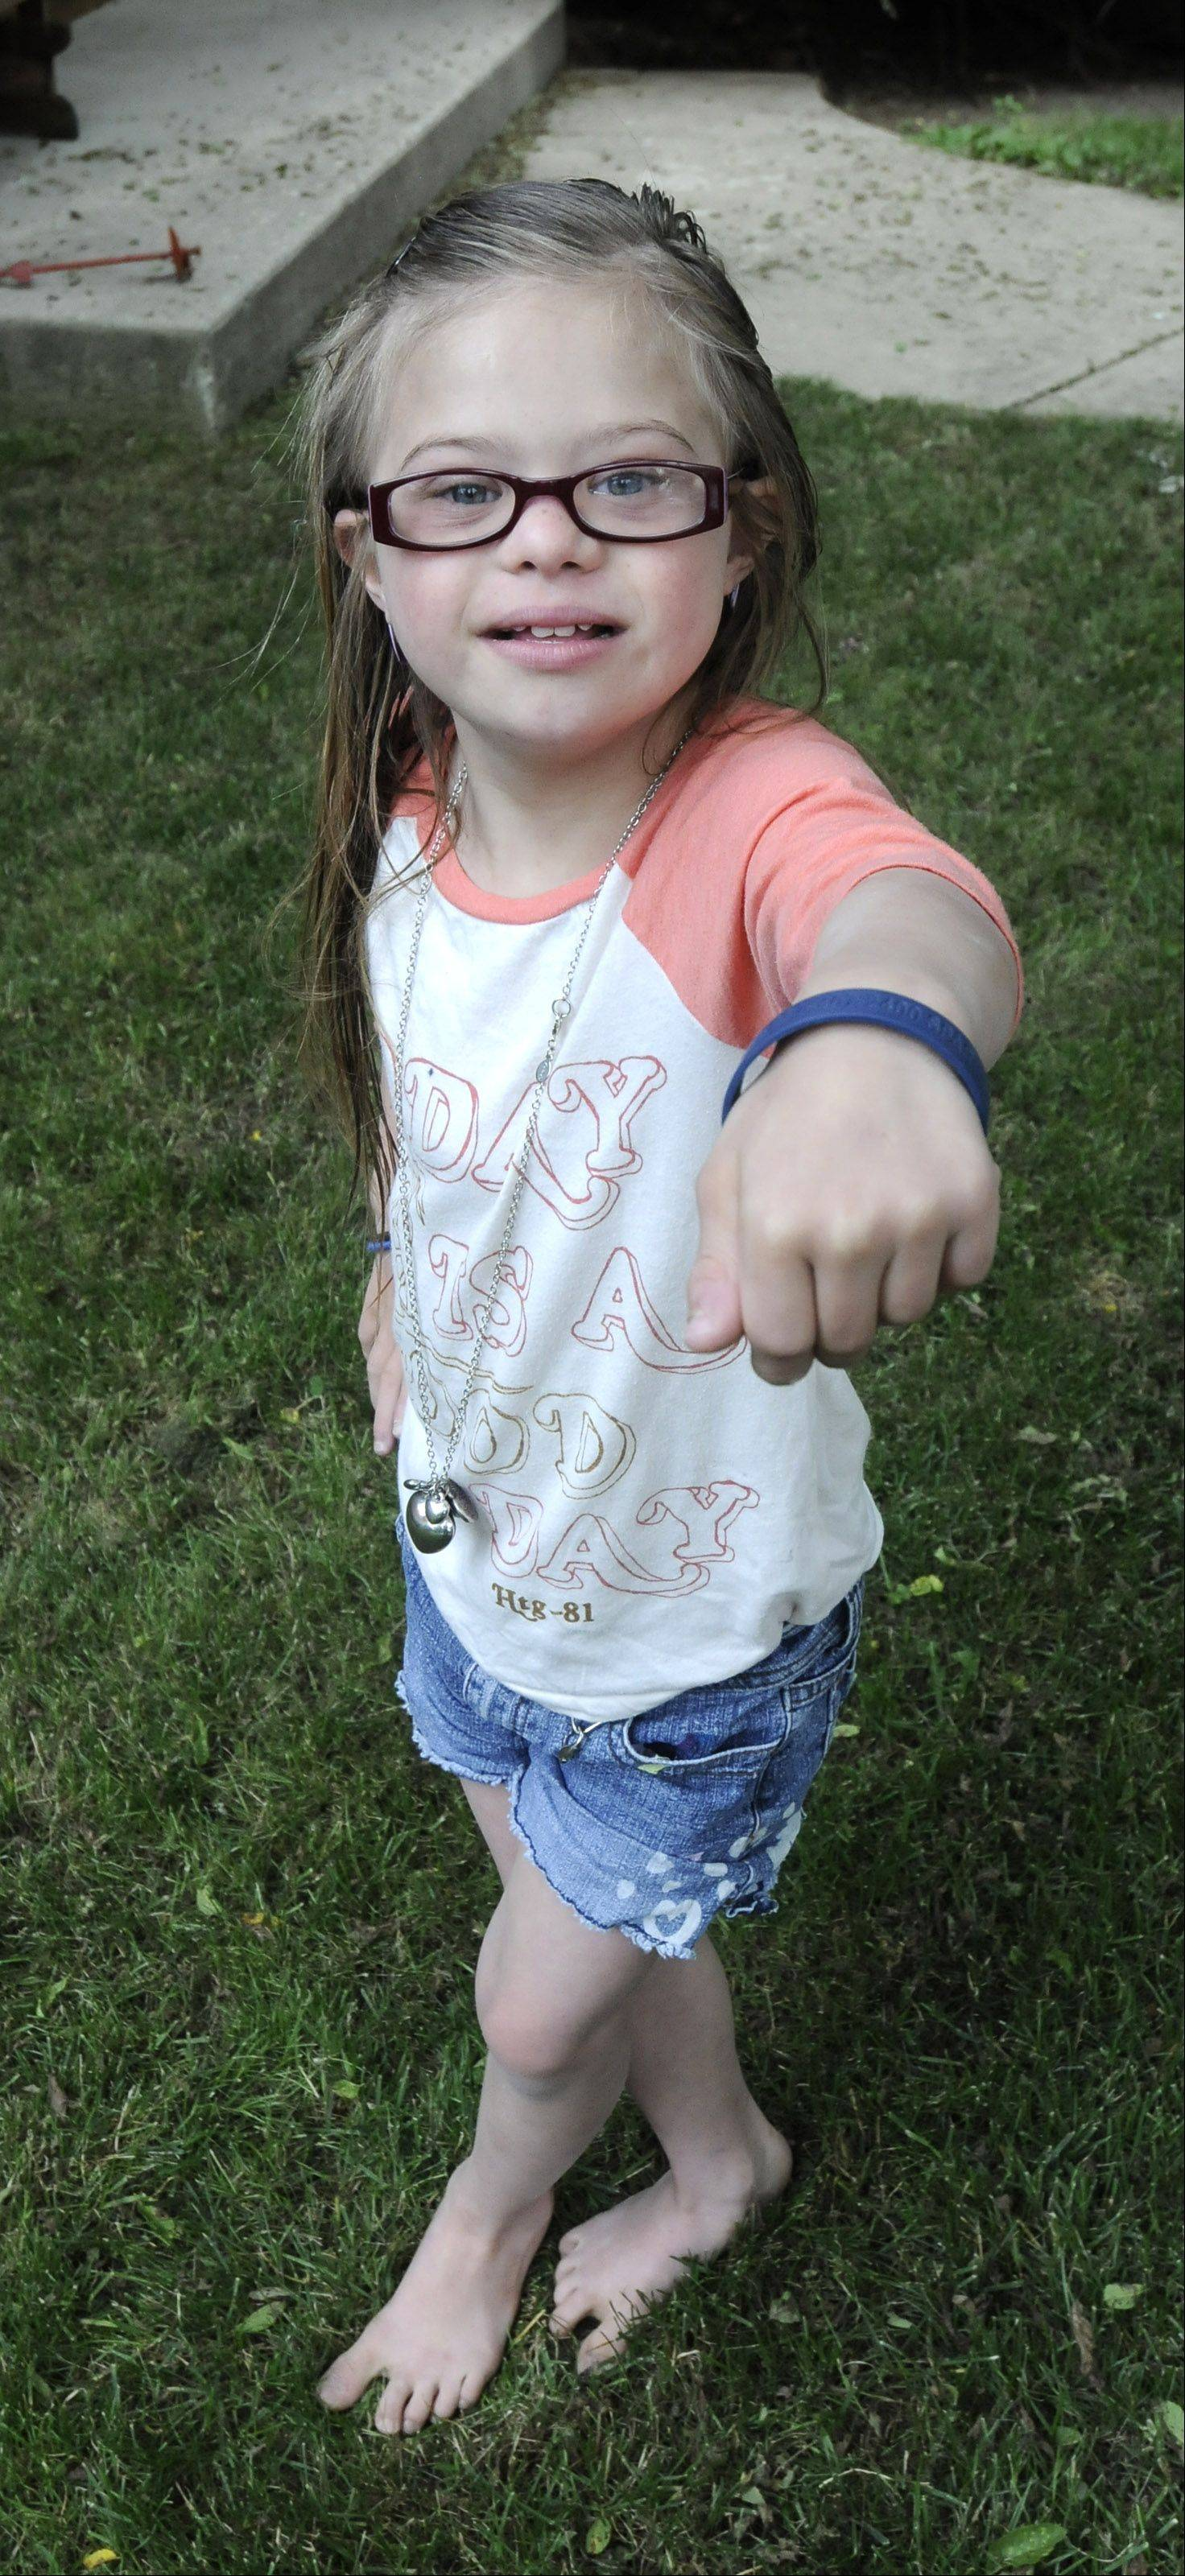 Sara Davis, 9, who lives near Downers Grove, displays her SPARR wristband, which alerts people to call the DuPage County Sheriff's Office if she ever gets lost.